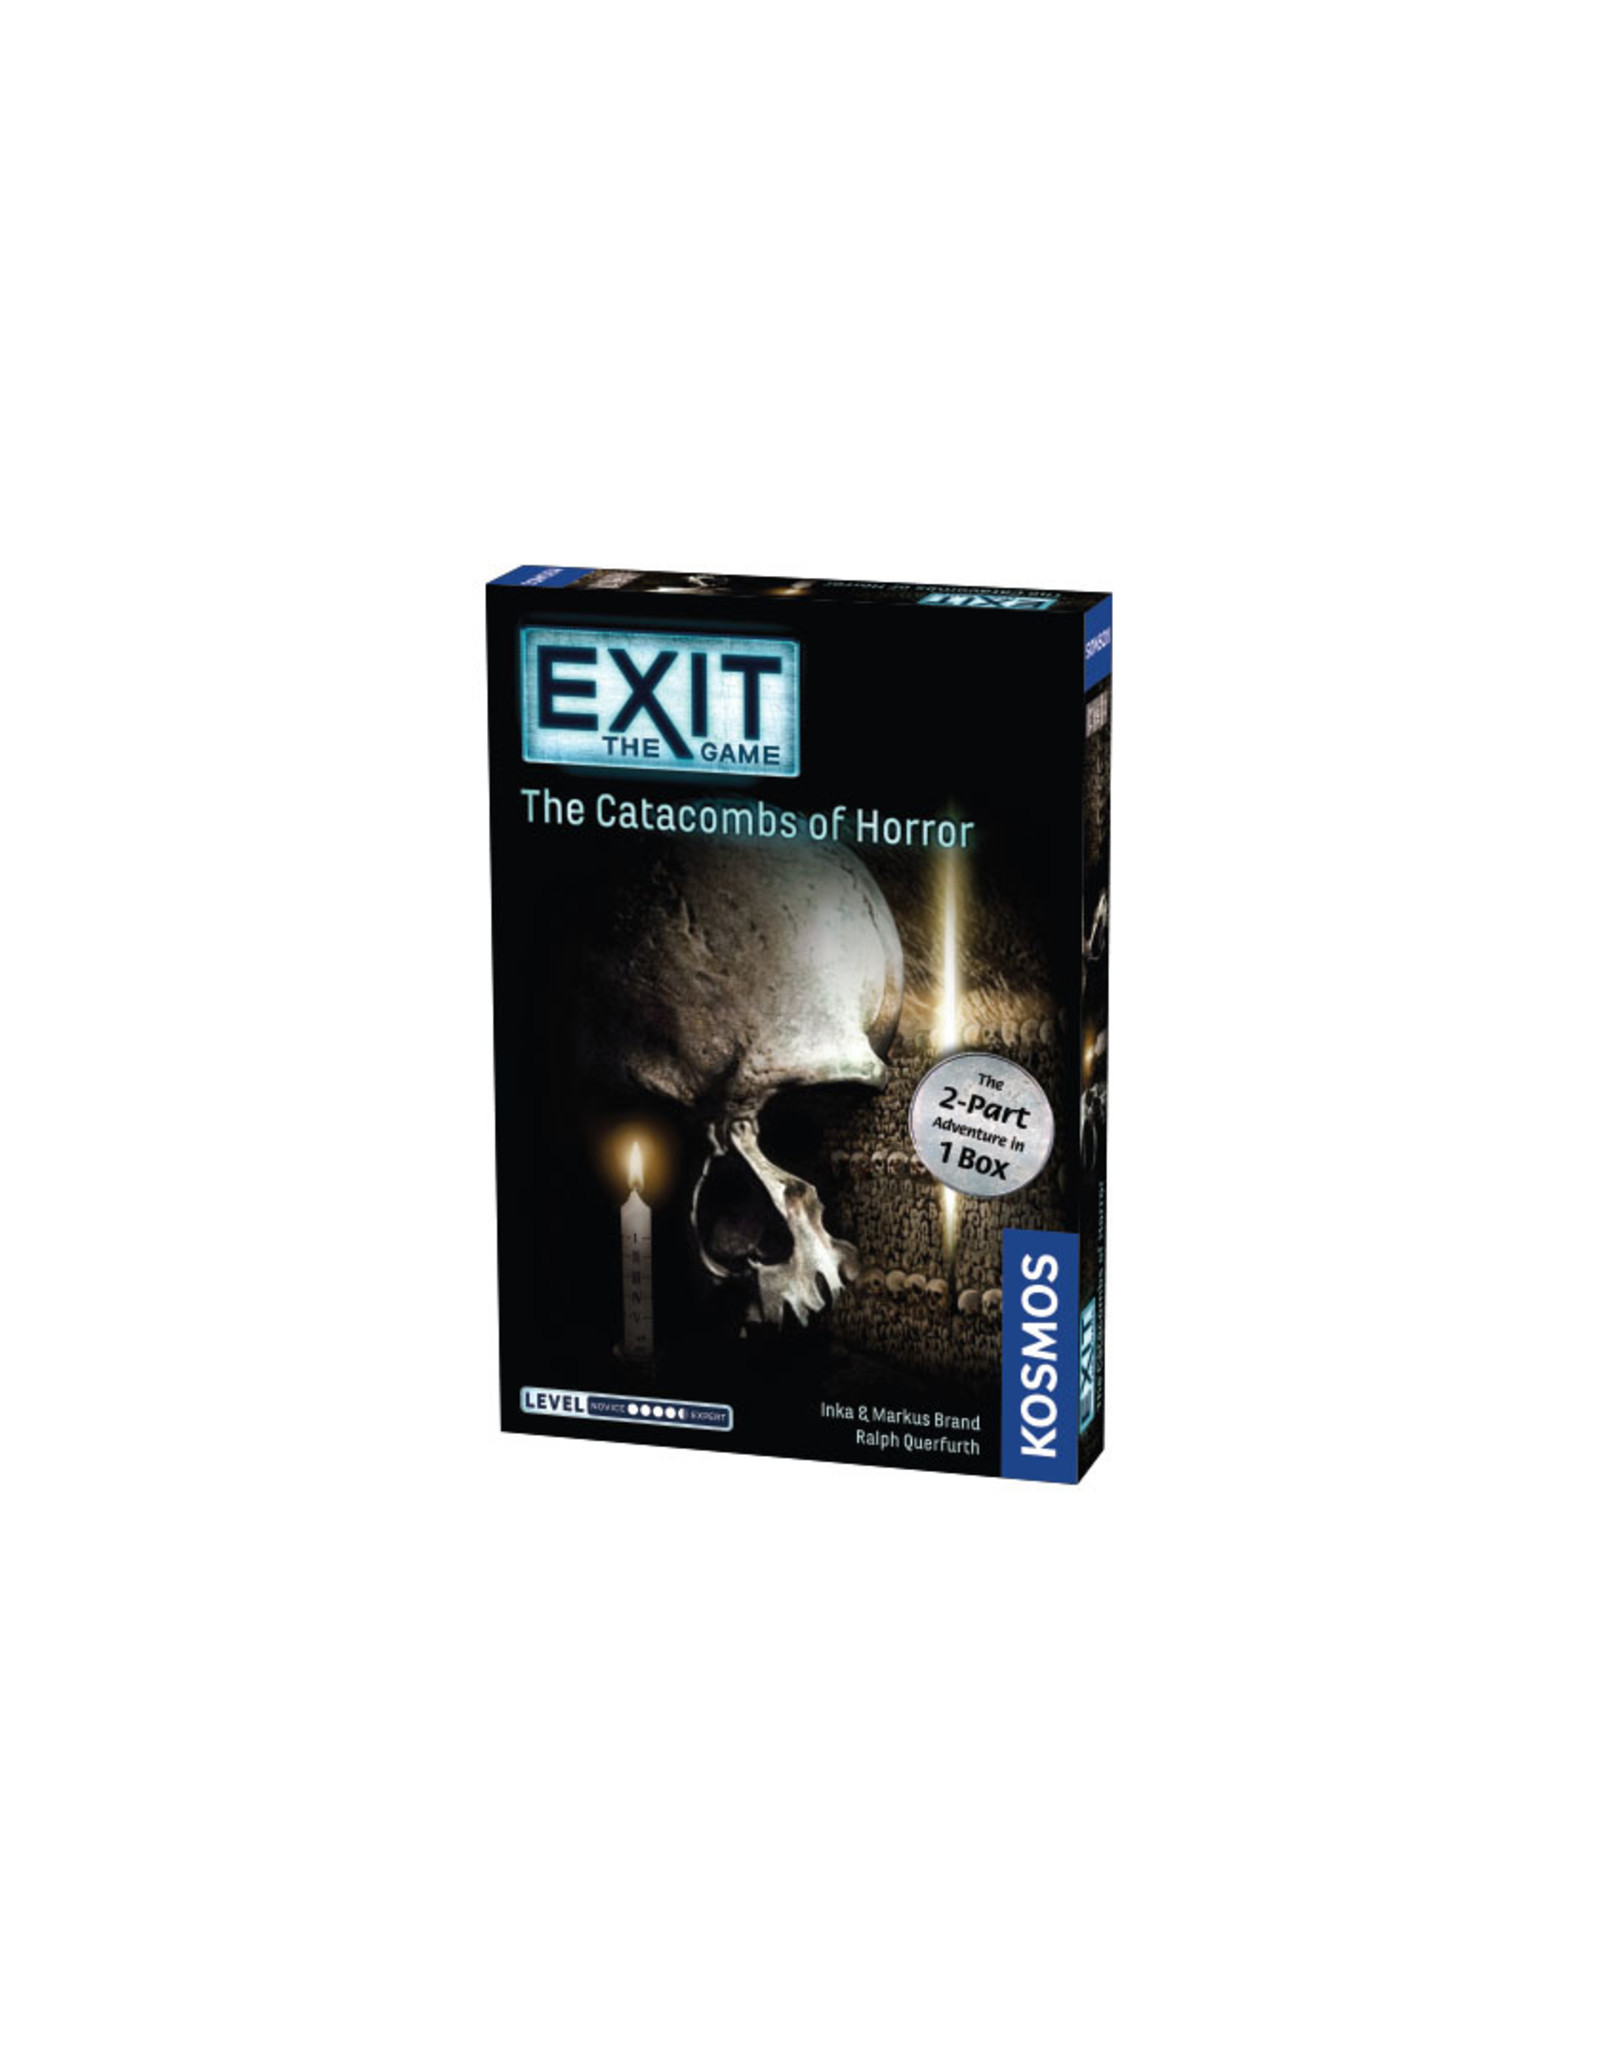 Thames & Kosmos EXIT: The Catacombs of Horror (Double Adventure) 4.5/5